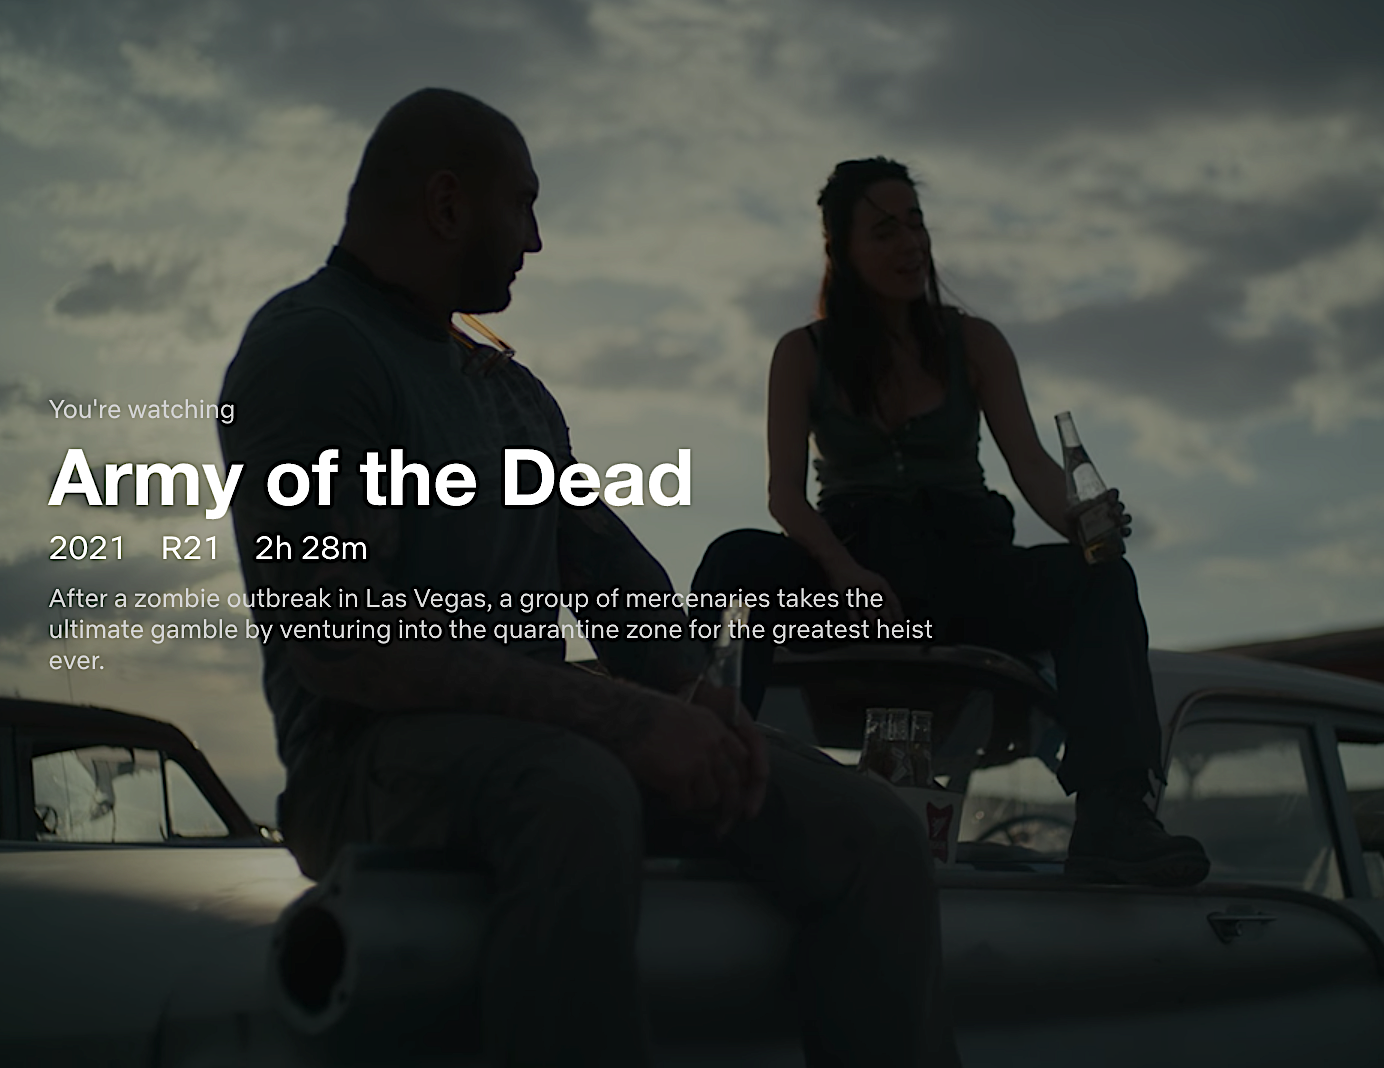 Army of the Dead